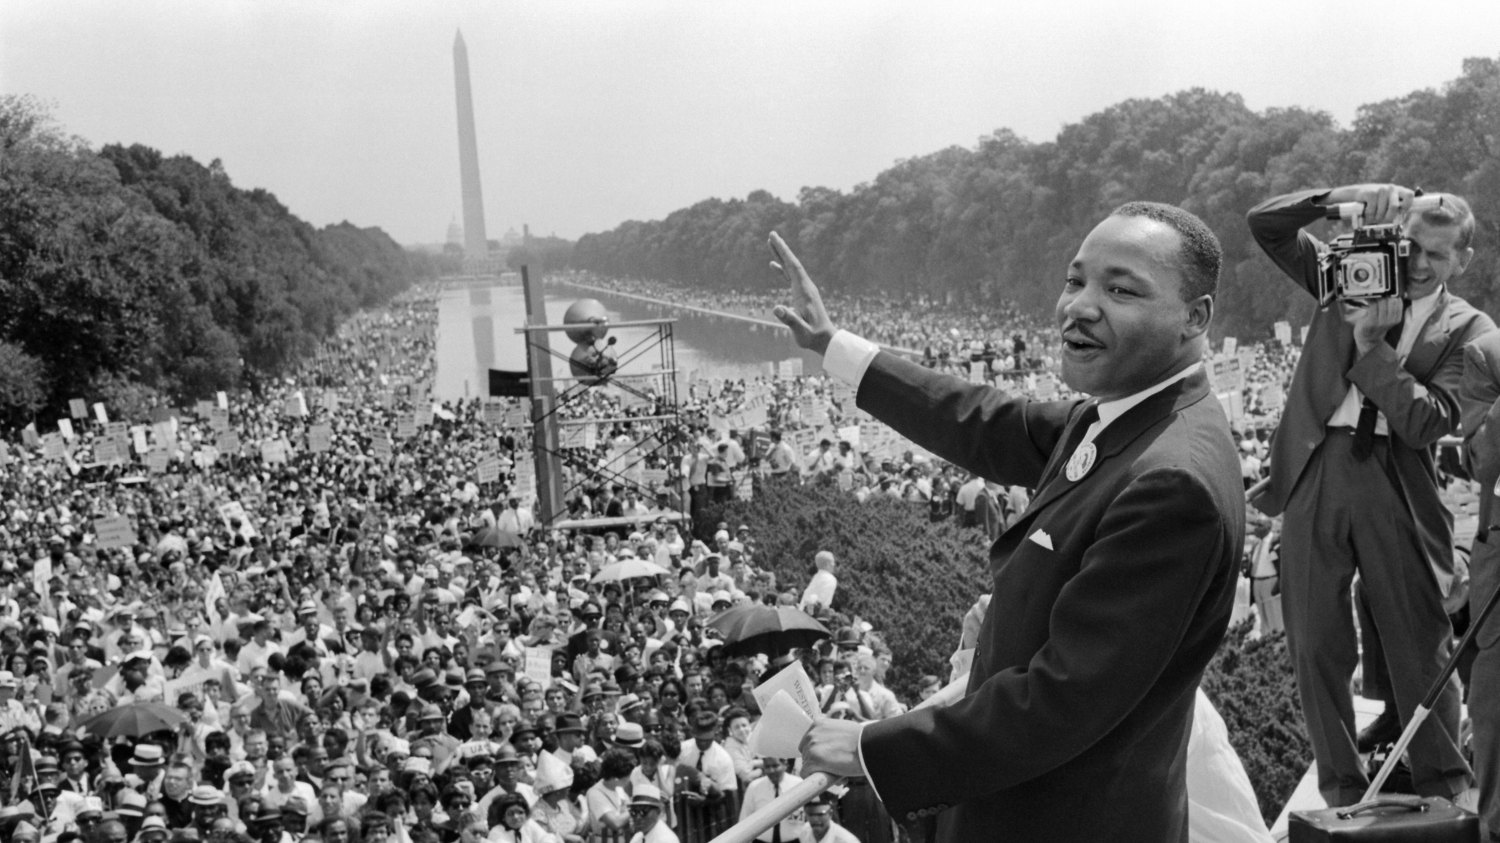 On the 55th anniversary of the March on Washington, a visit